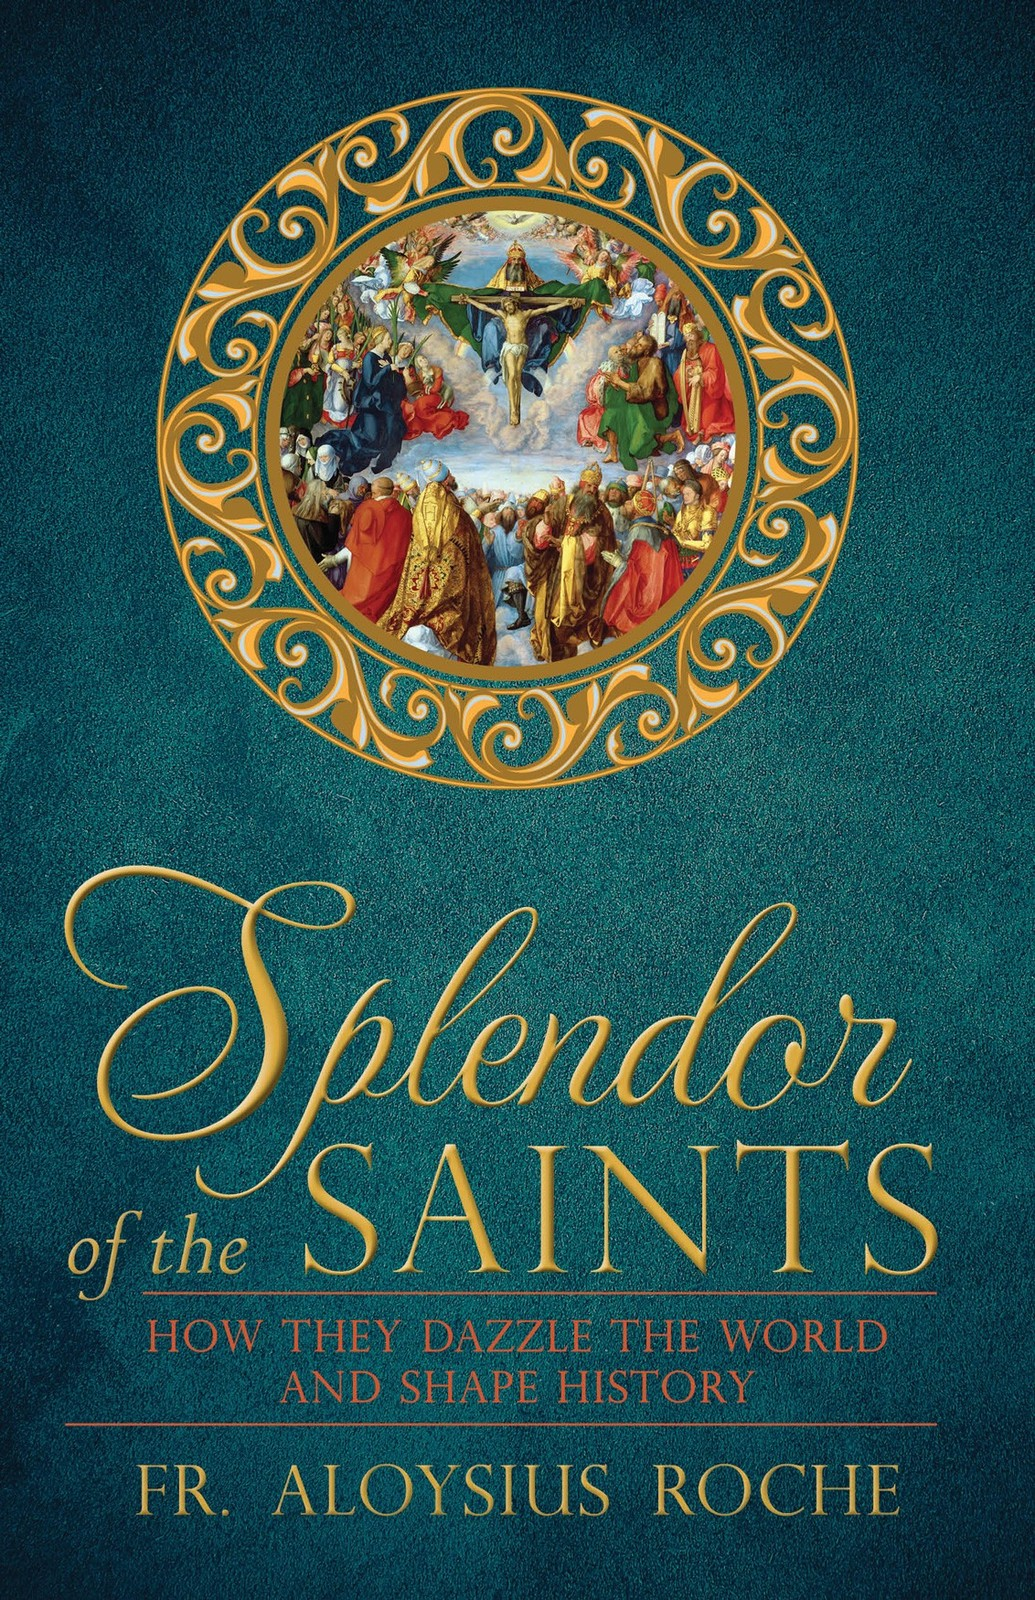 Splendor of the saints how they dazzle the world and shape history 9781618906076